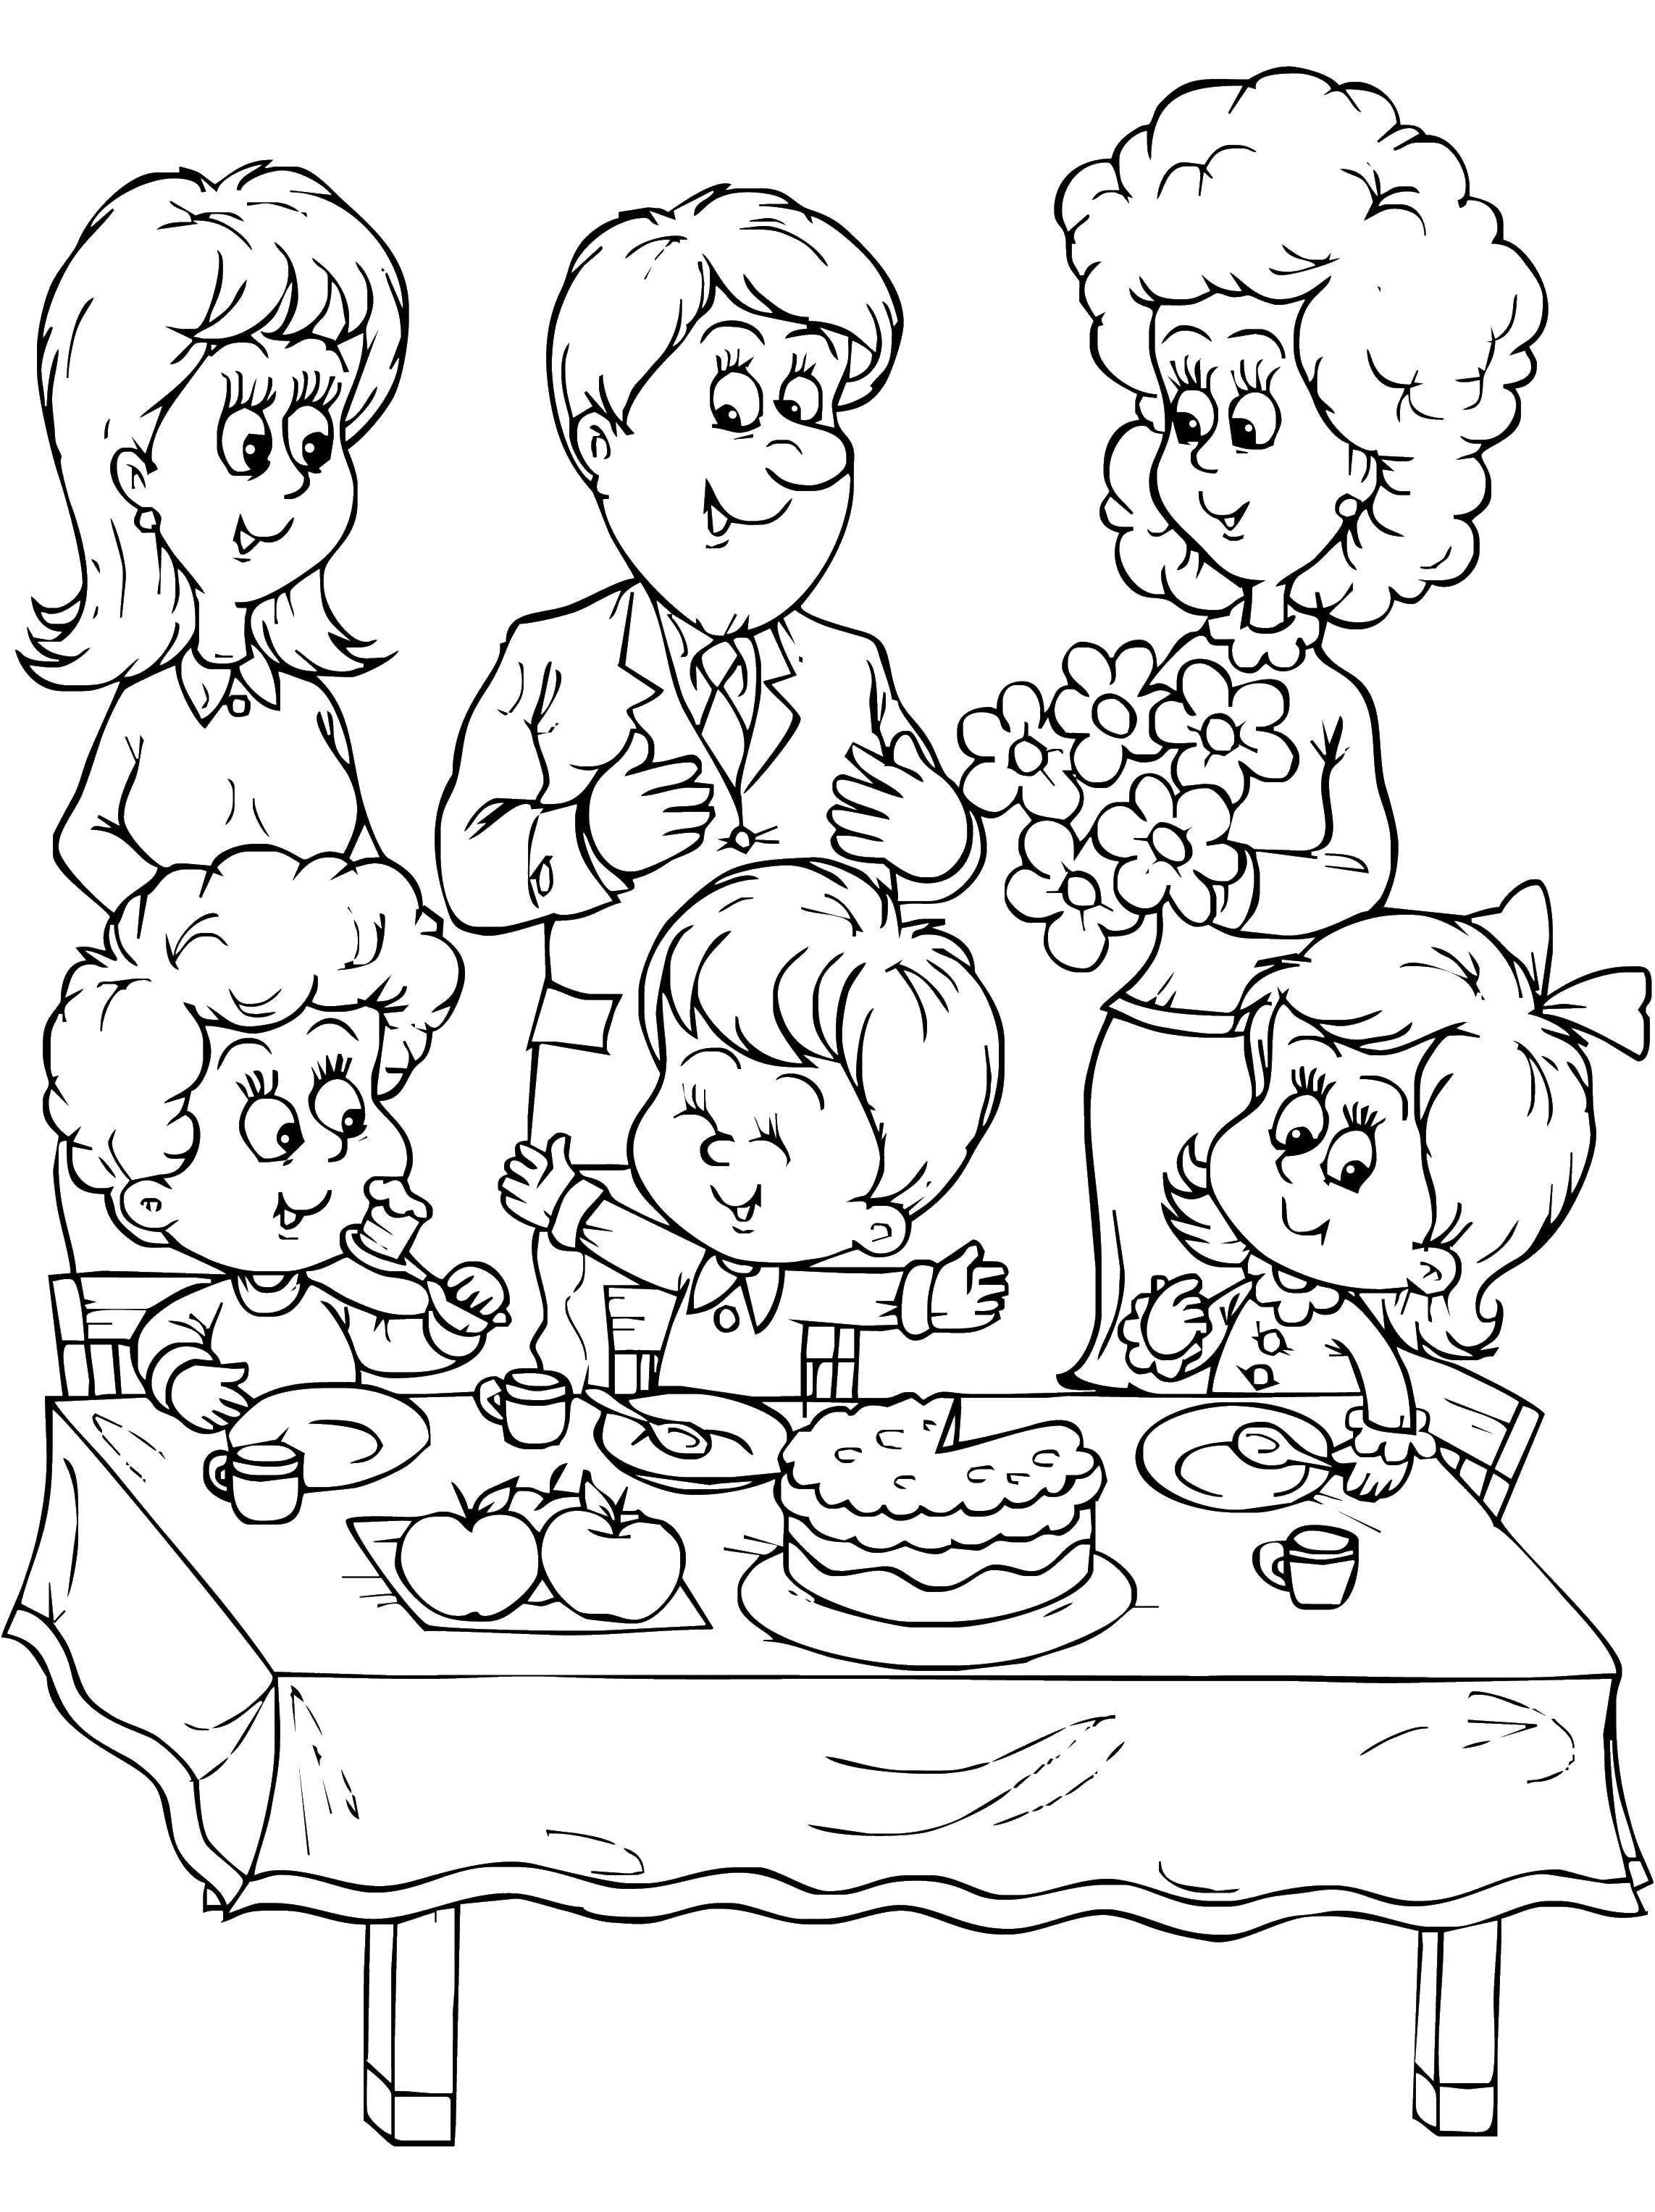 Coloring sheet Family members Download vase with fifteen sunflowers, van Gogh,.  Print